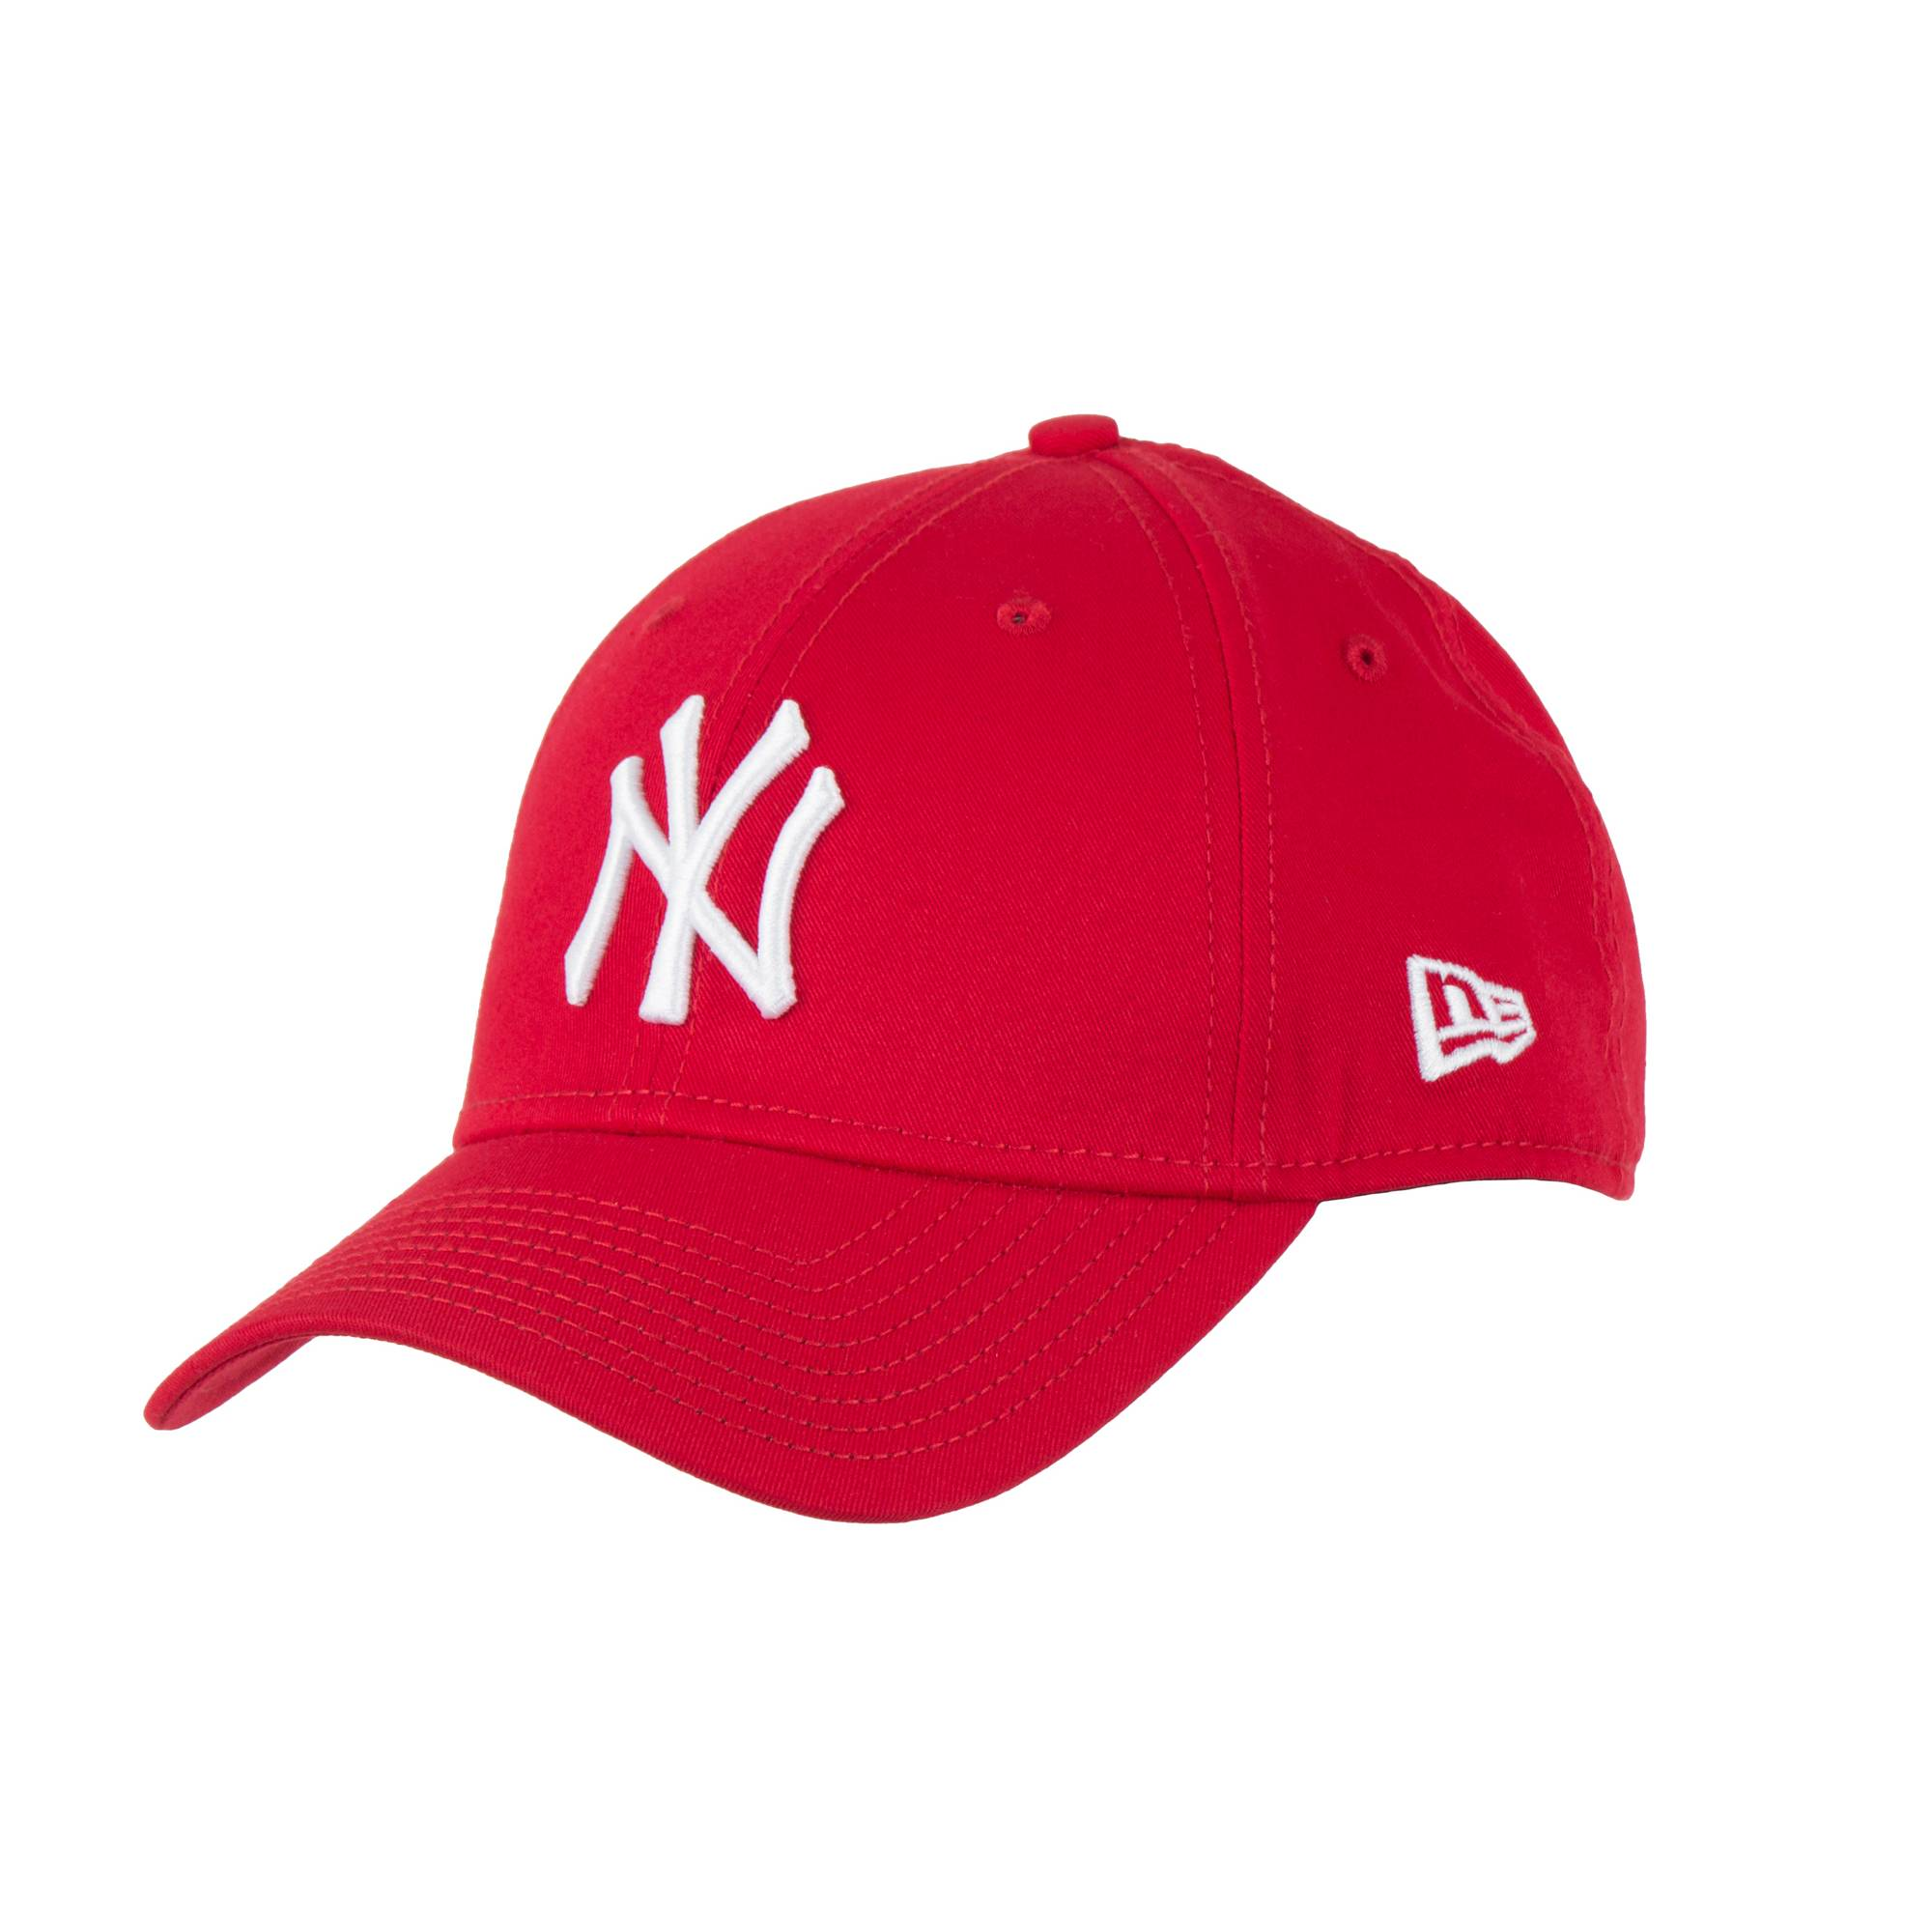 NEW ERA- Adjustable Peaked Cap NY Yankees 9 Forty. Red. Loading zoom e876cdc5c4af